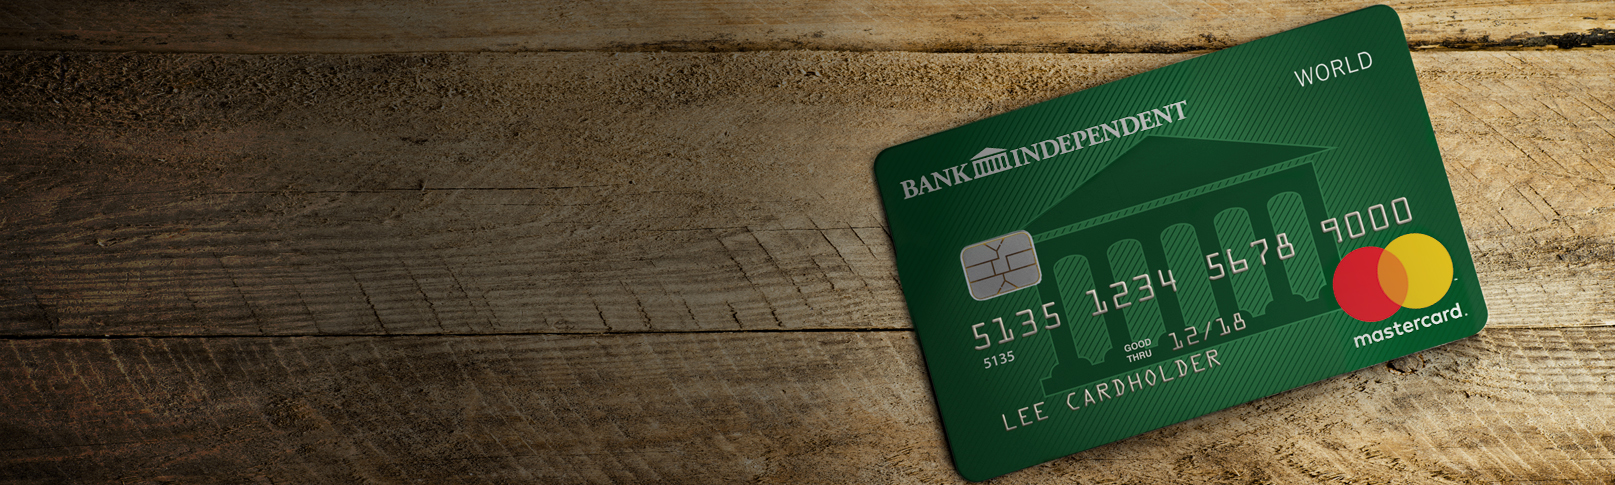 Image of Personal Credit Card on a wood background